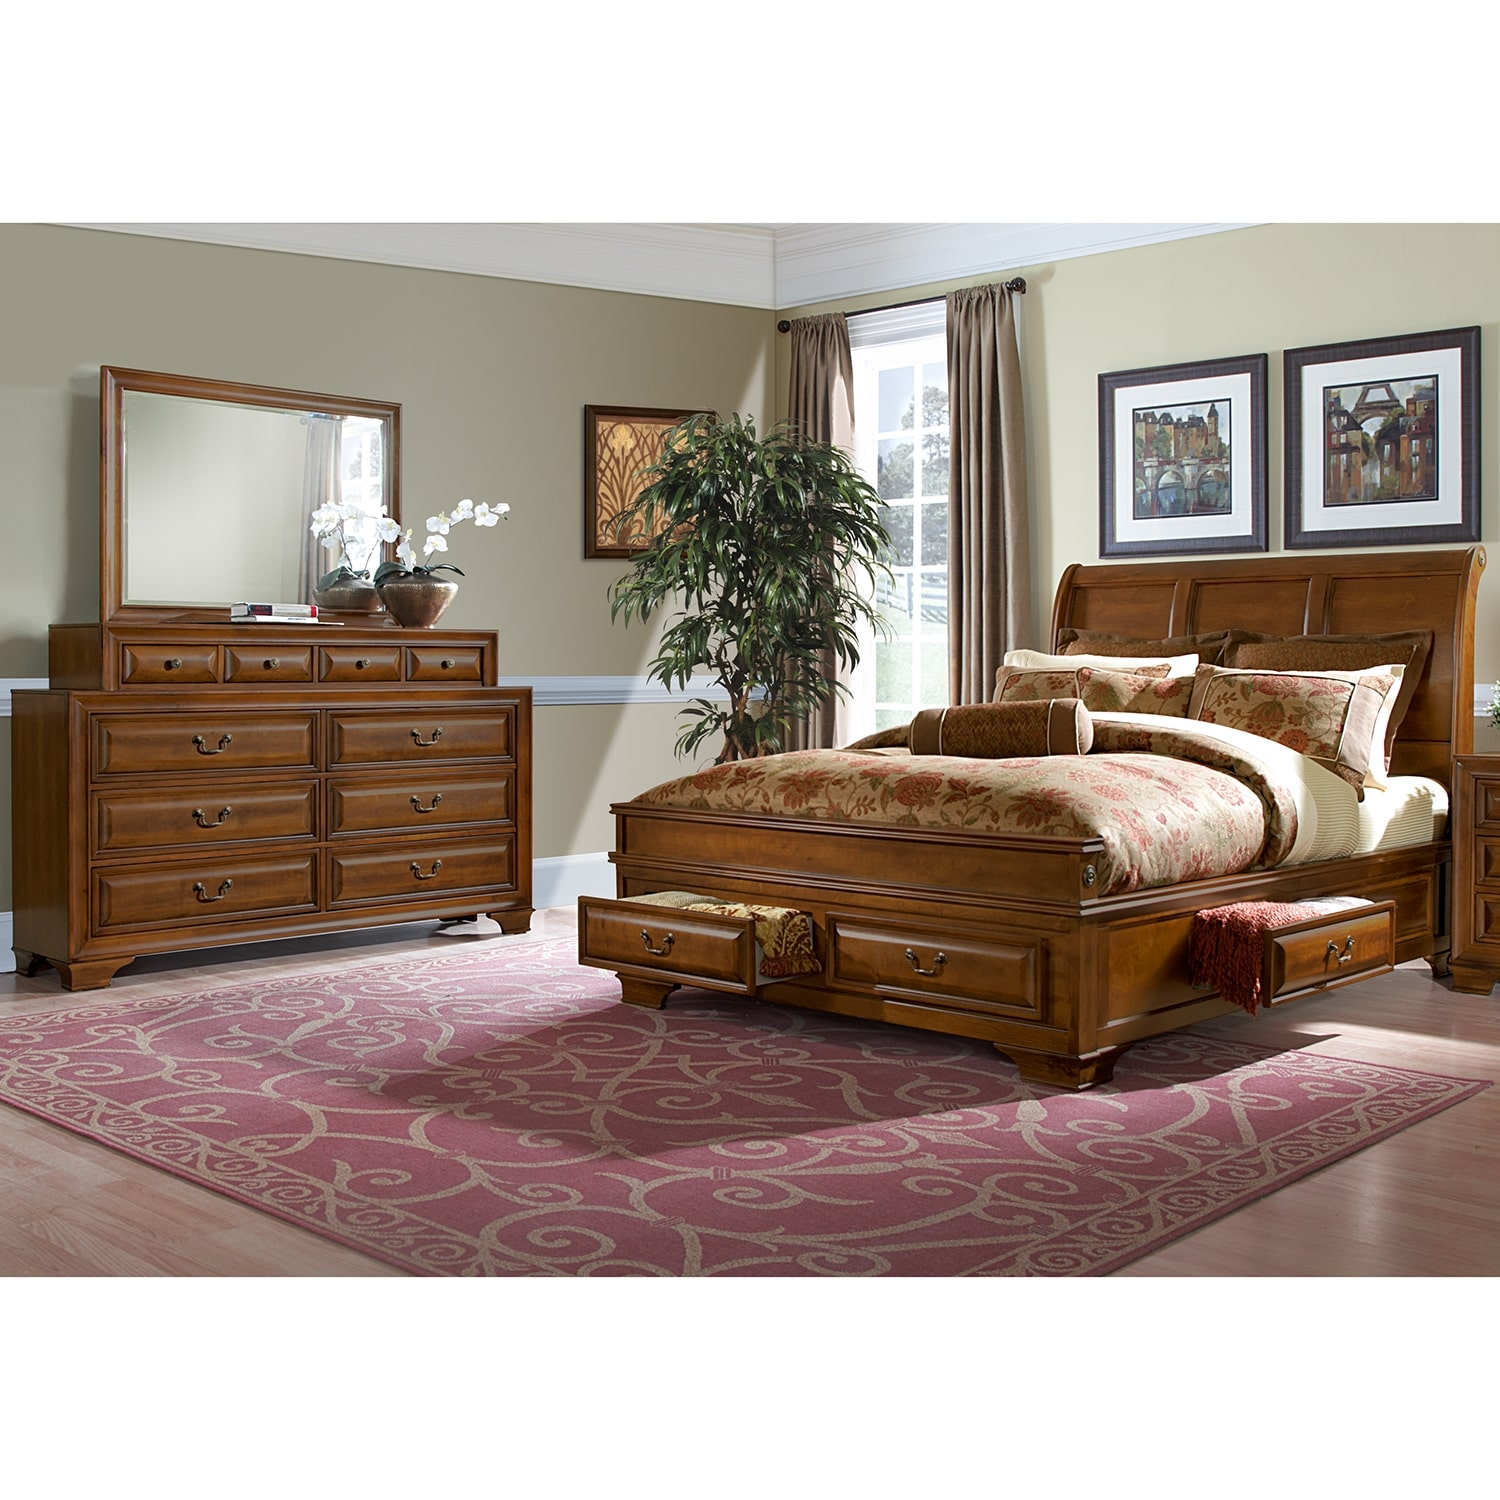 Sanibelle 5 Piece Queen Storage Bedroom Set Pine Value City Furniture